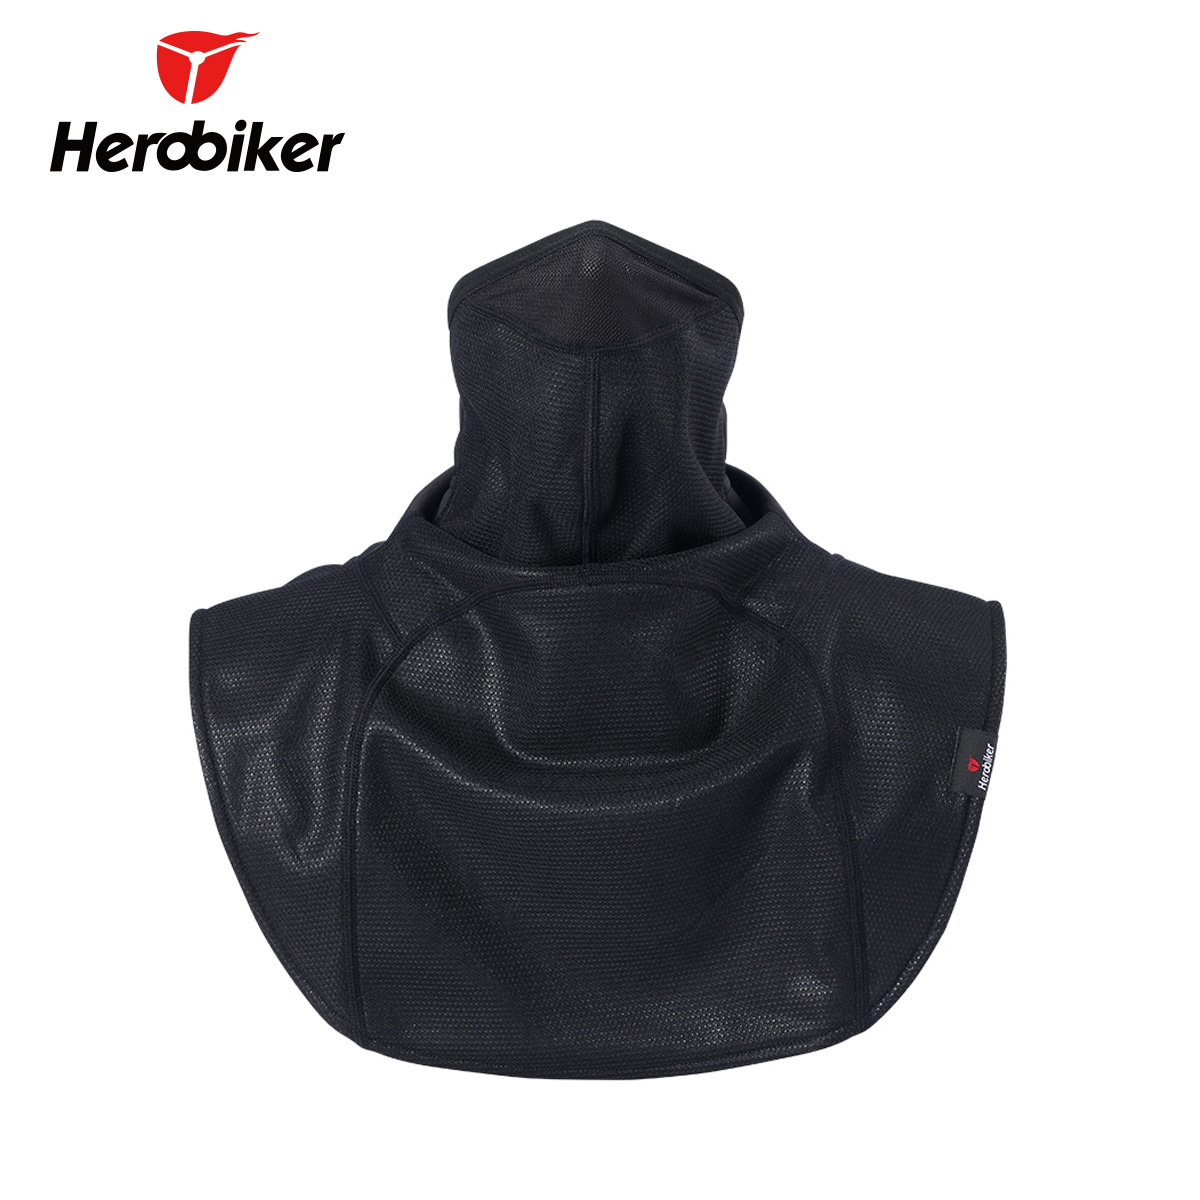 HEROBIKER Motorcycle Face Mask Shawl Windproof Winter Face Mask Thermal Fleece Cycling Mask Moto Scarf Ski Bicycle Bike Mask new winter warm scarf hat mens thermal fleece hood ski bike hiking unisex winter windproof face mask beanie caps mens